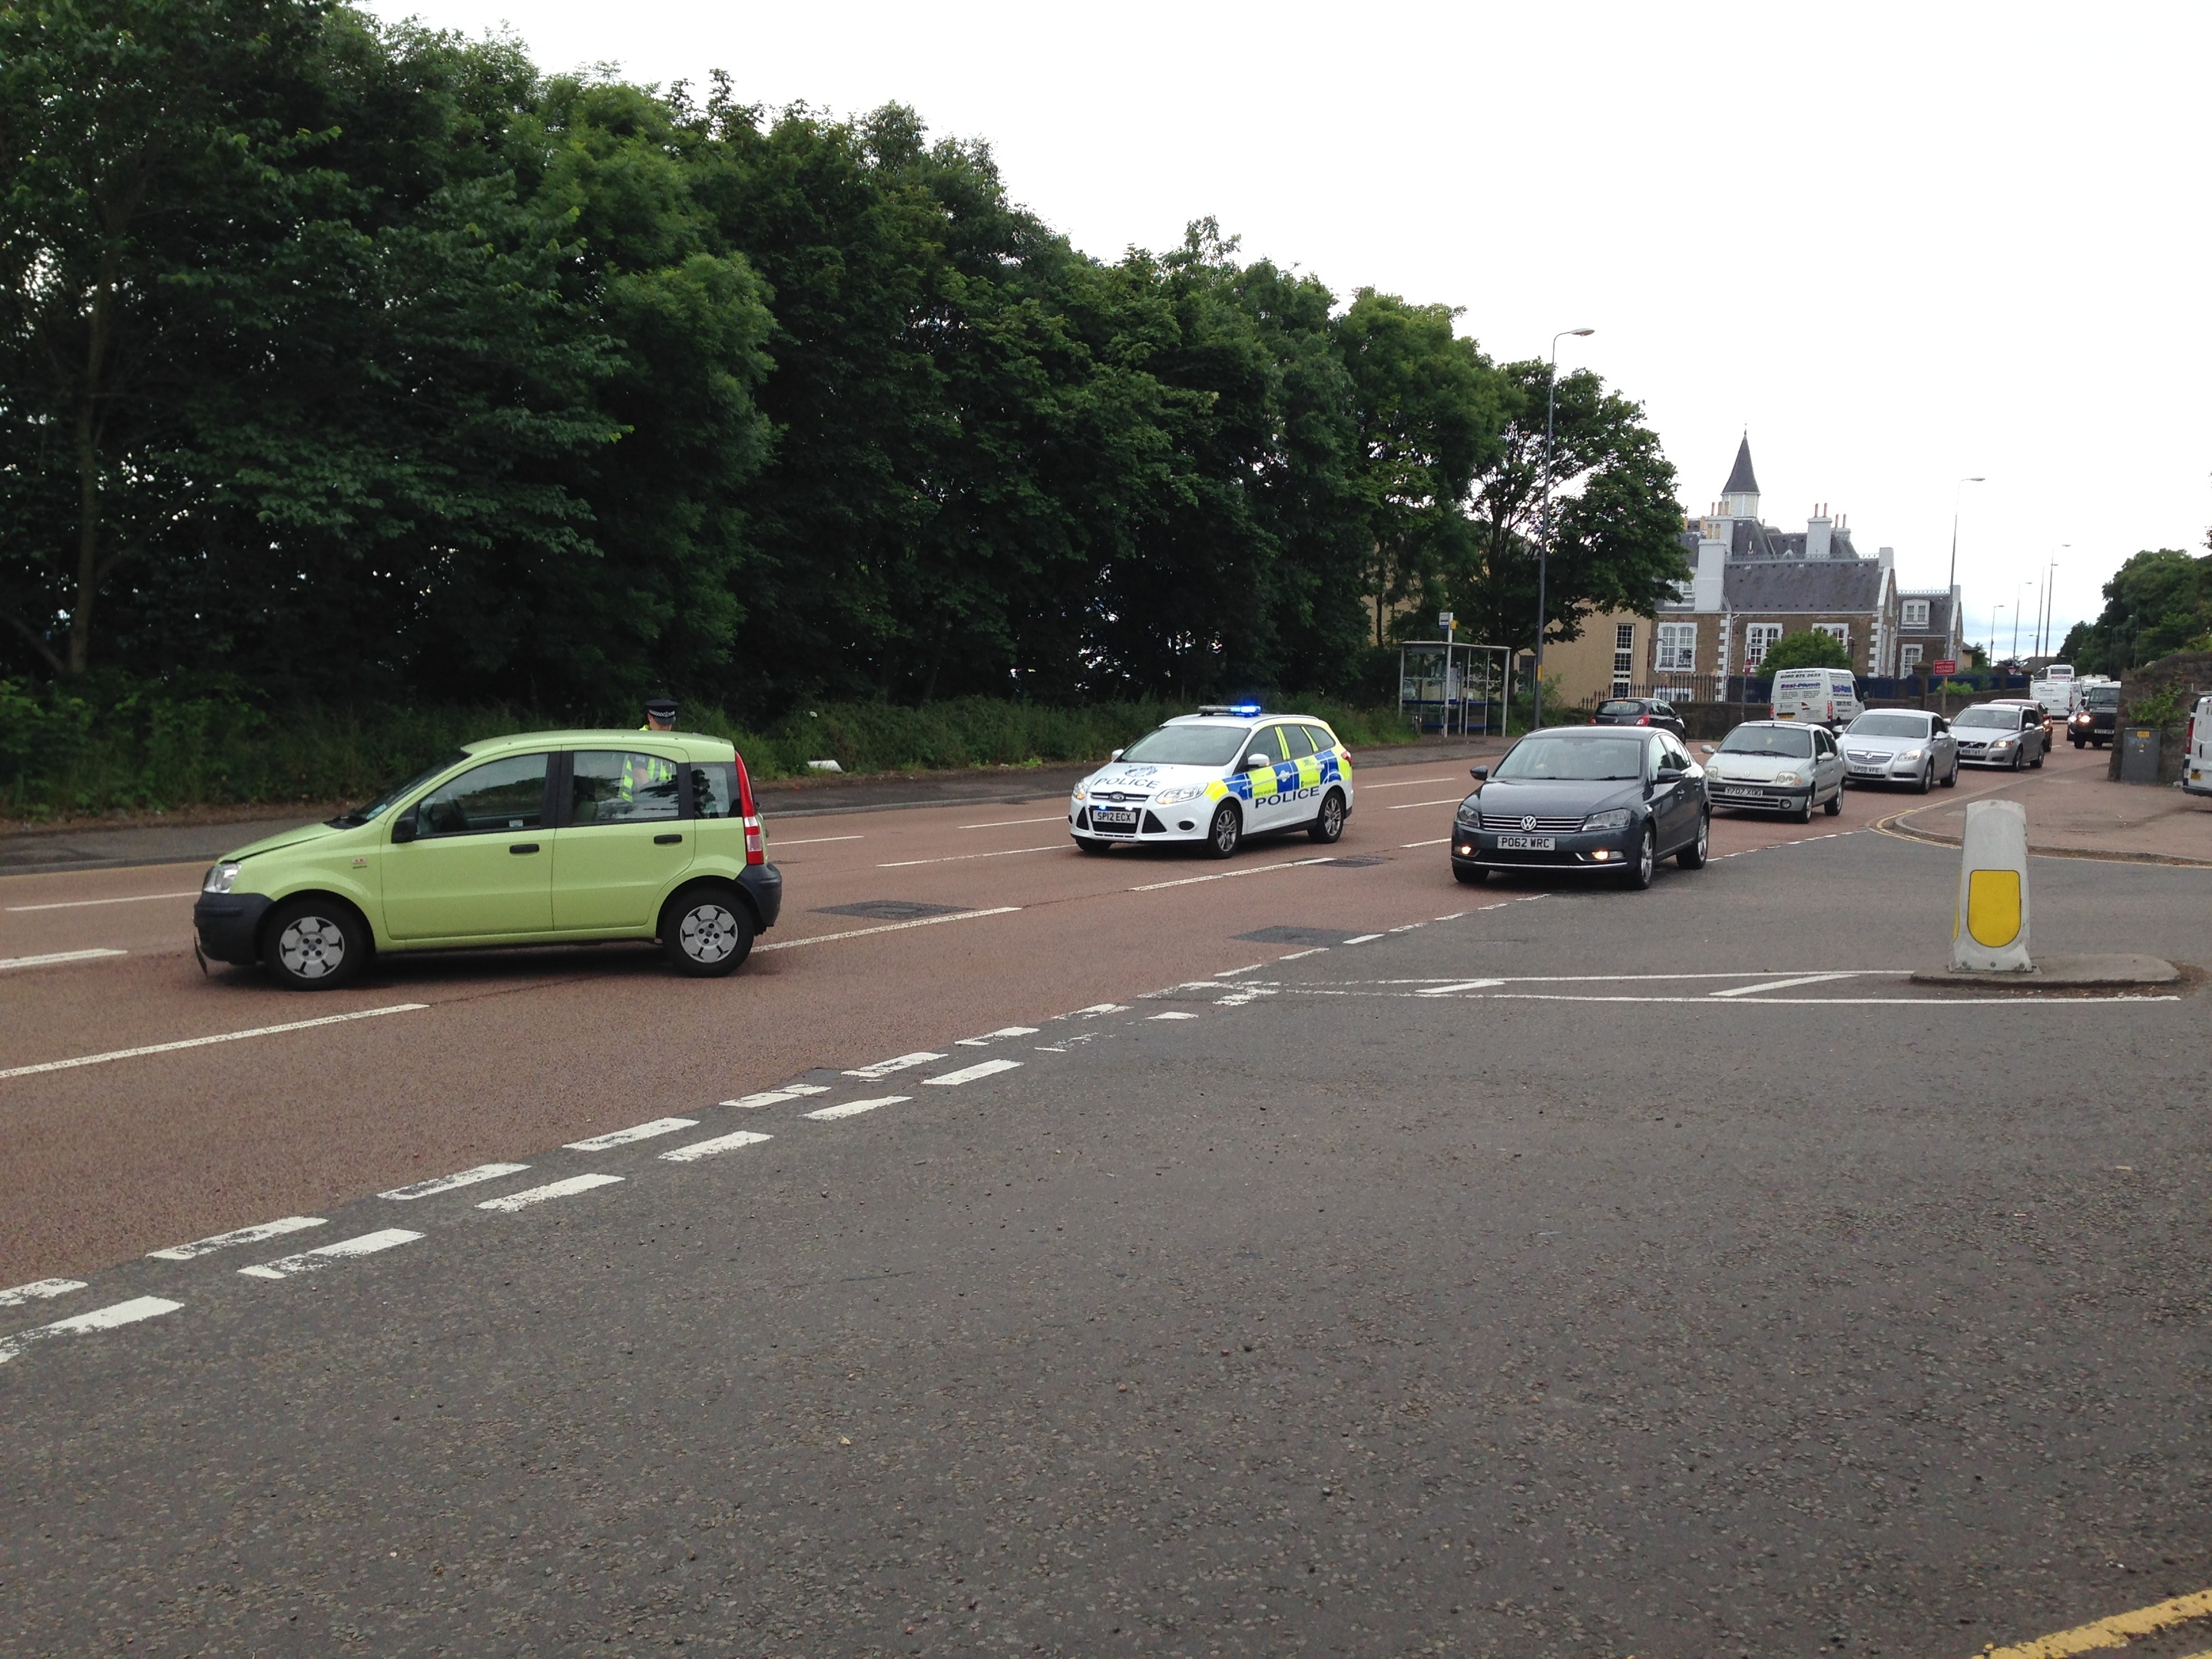 One lane on Broughty Ferry  Road is still blocked.